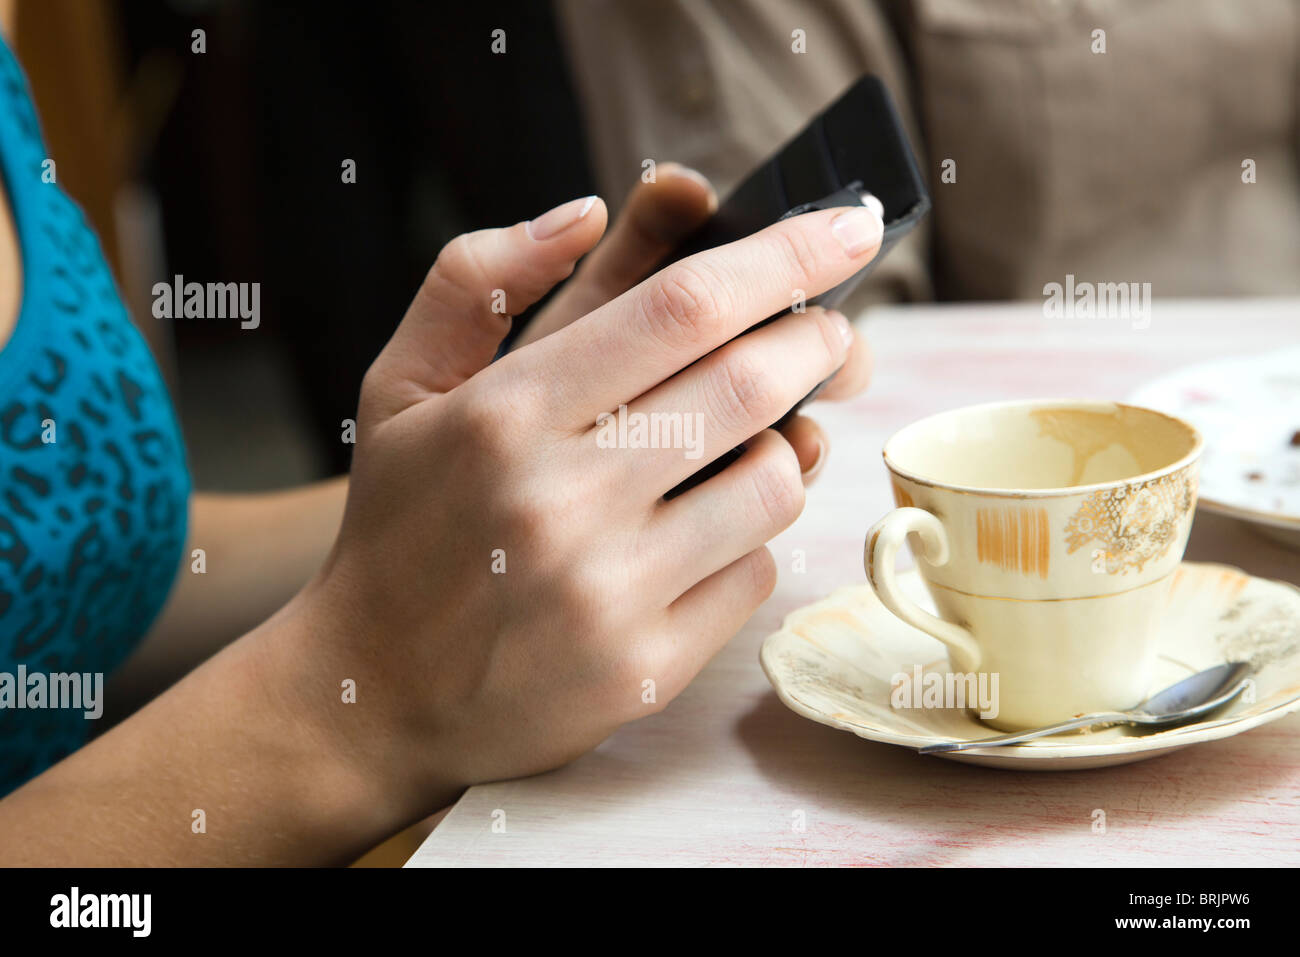 Woman holding cell phone, close-up - Stock Image